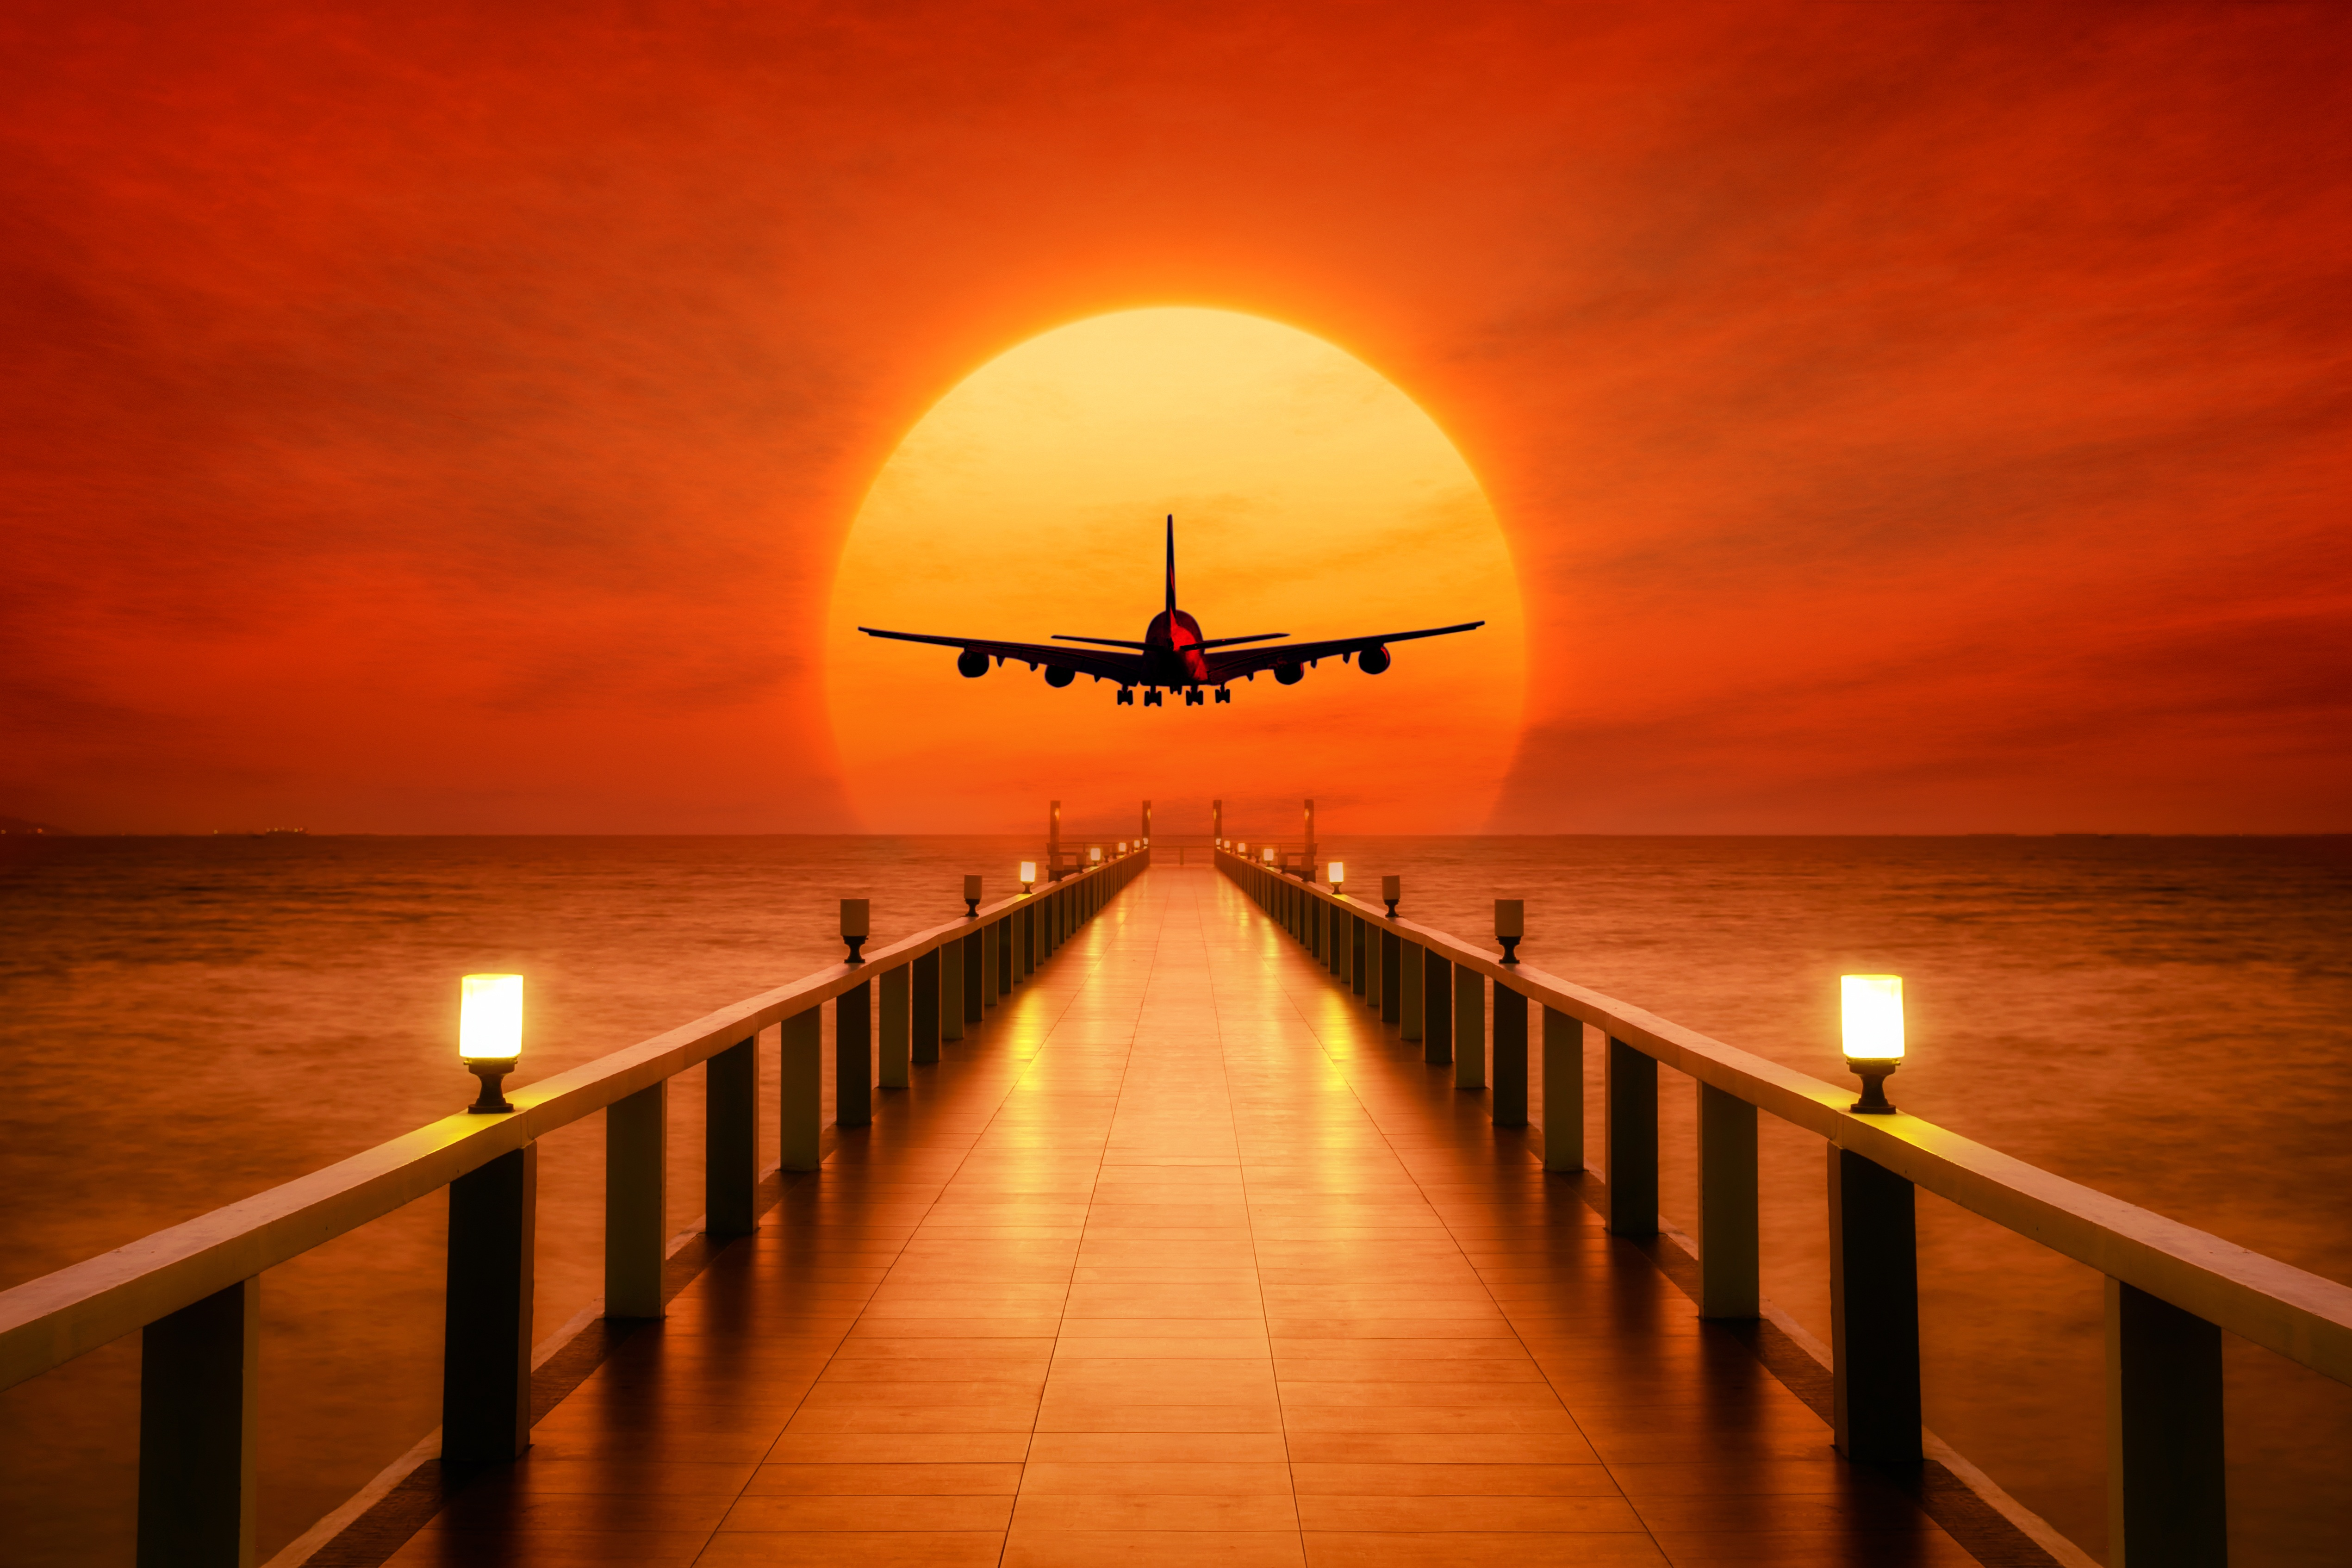 126060 Screensavers and Wallpapers Photoshop for phone. Download Sunset, Art, Plane, Airplane, Wharf, Photoshop, Berth pictures for free